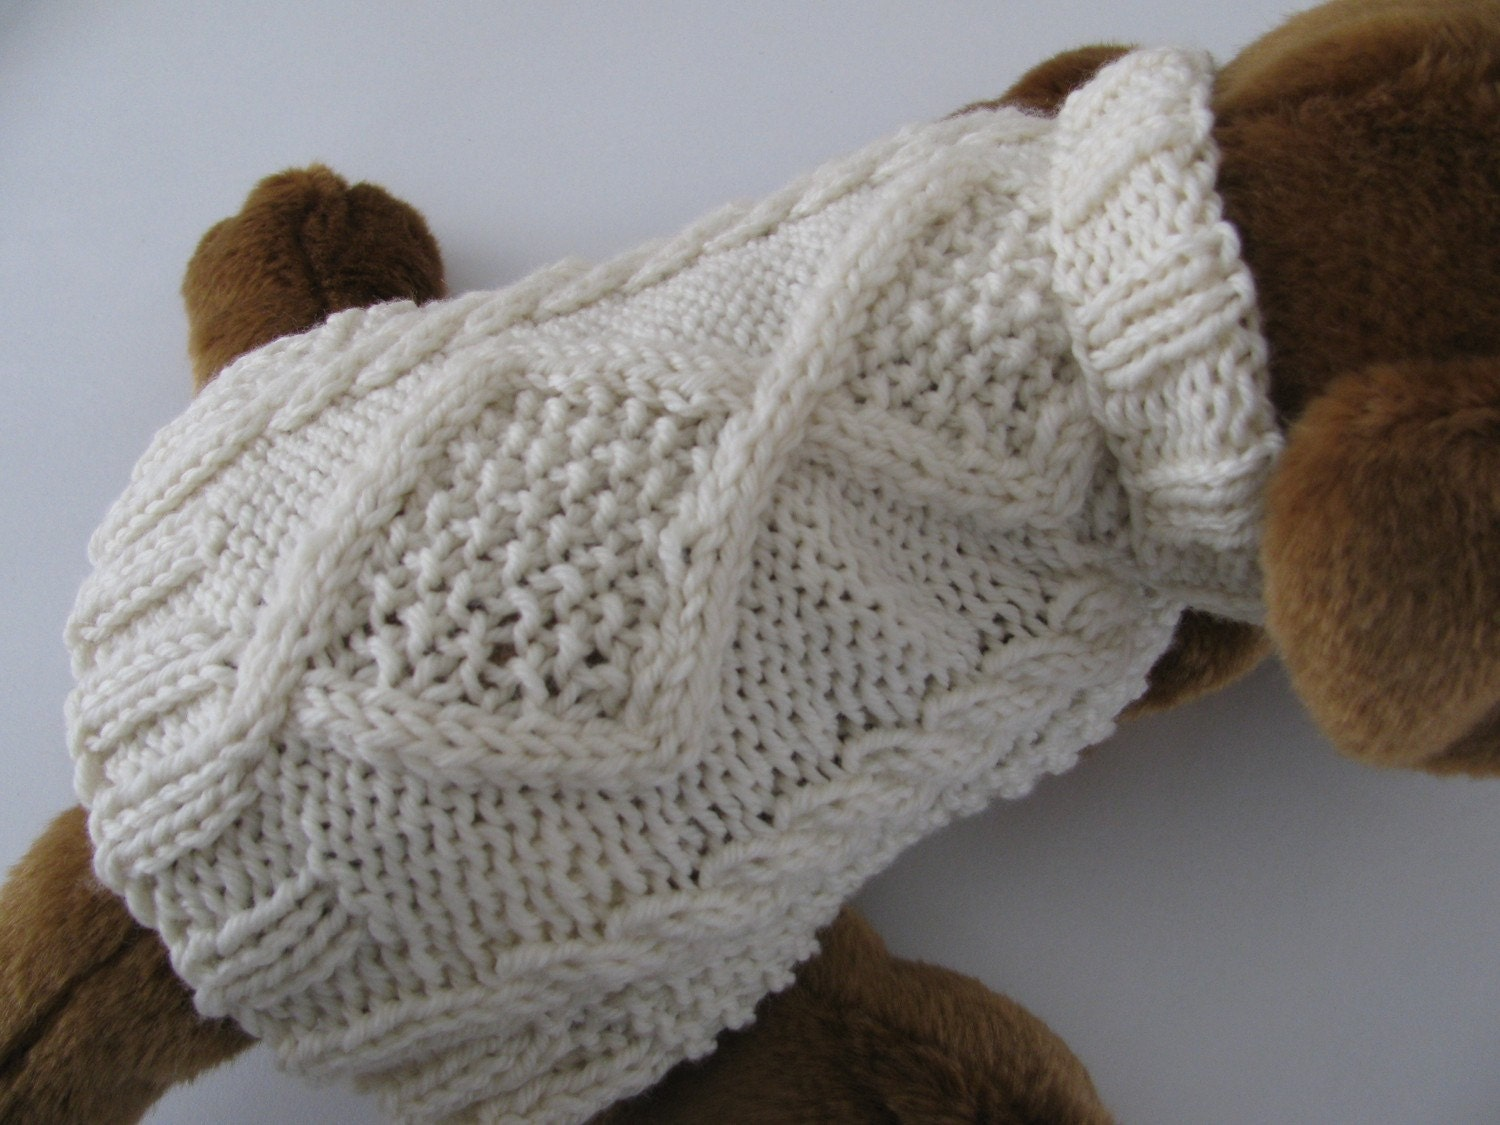 Knitting Pattern Easy Dog Sweater : Dog sweater knitting pattern PDF Aran Diamond Back by ...